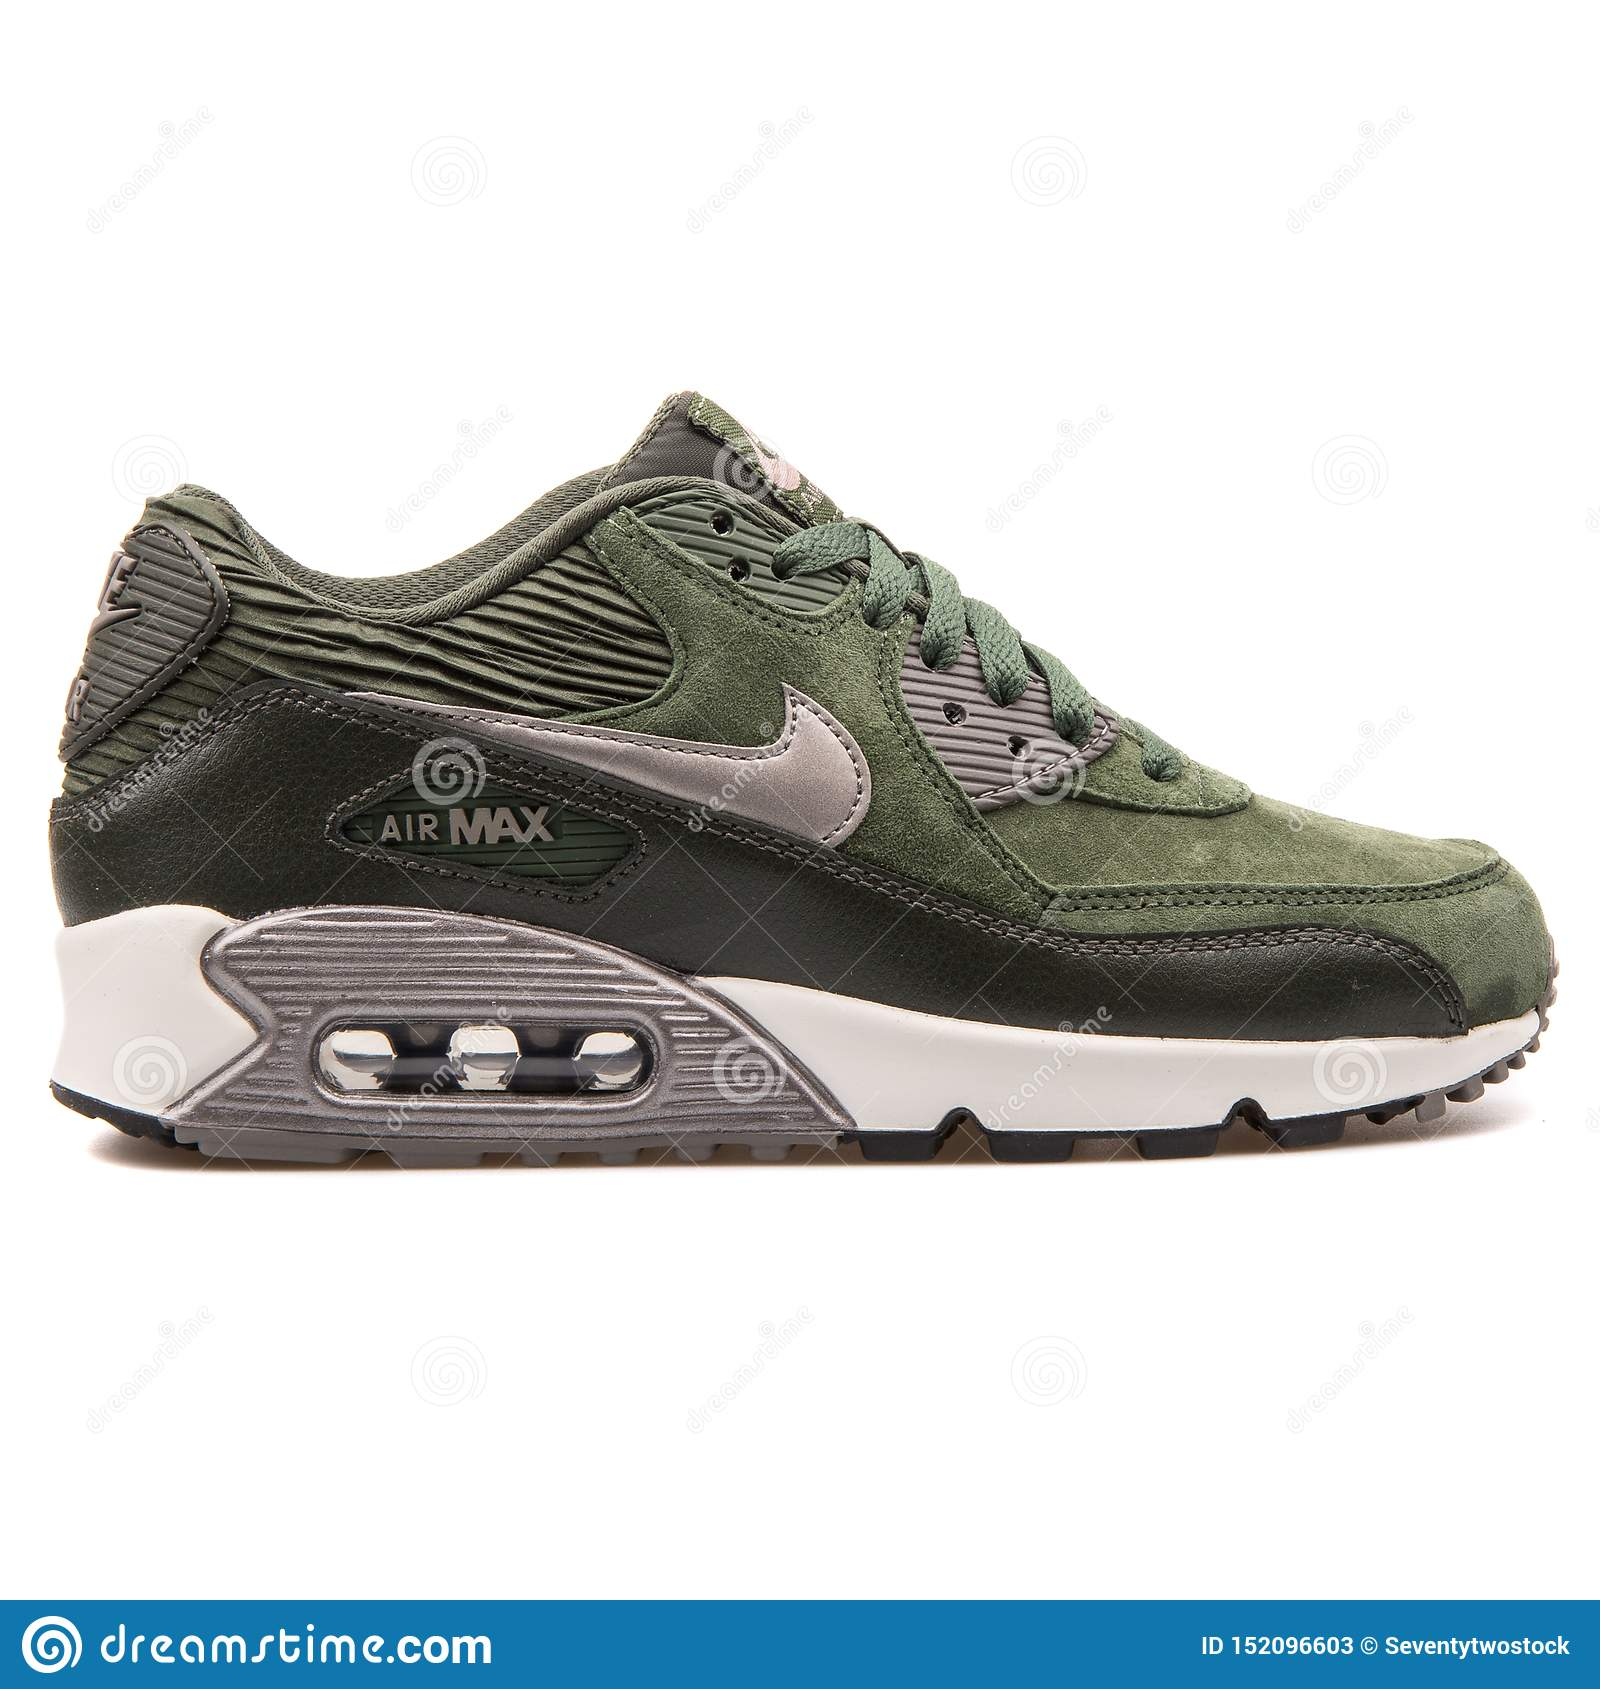 Nike Air Max 90 Leather Green, Black And Metallic Silver